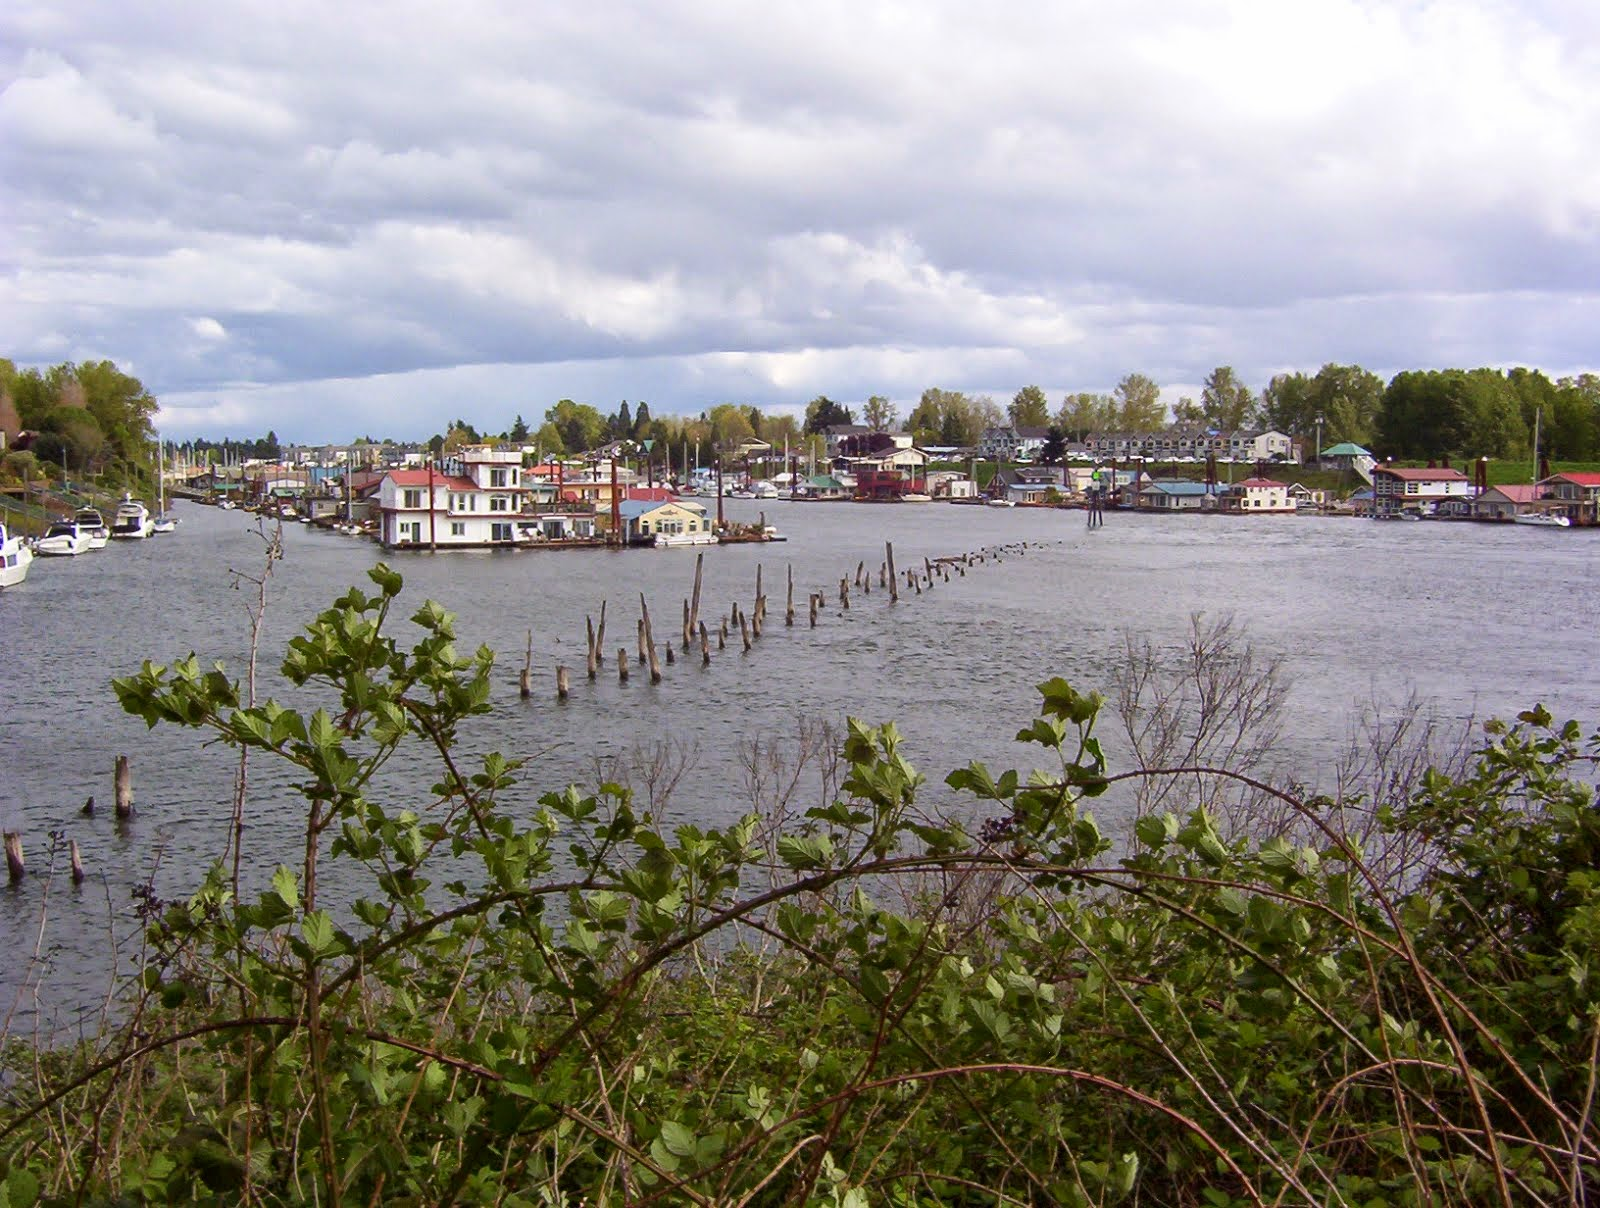 Pilings are all that remain from a 1930 streetcar  bridge crossing the North Portland harbor